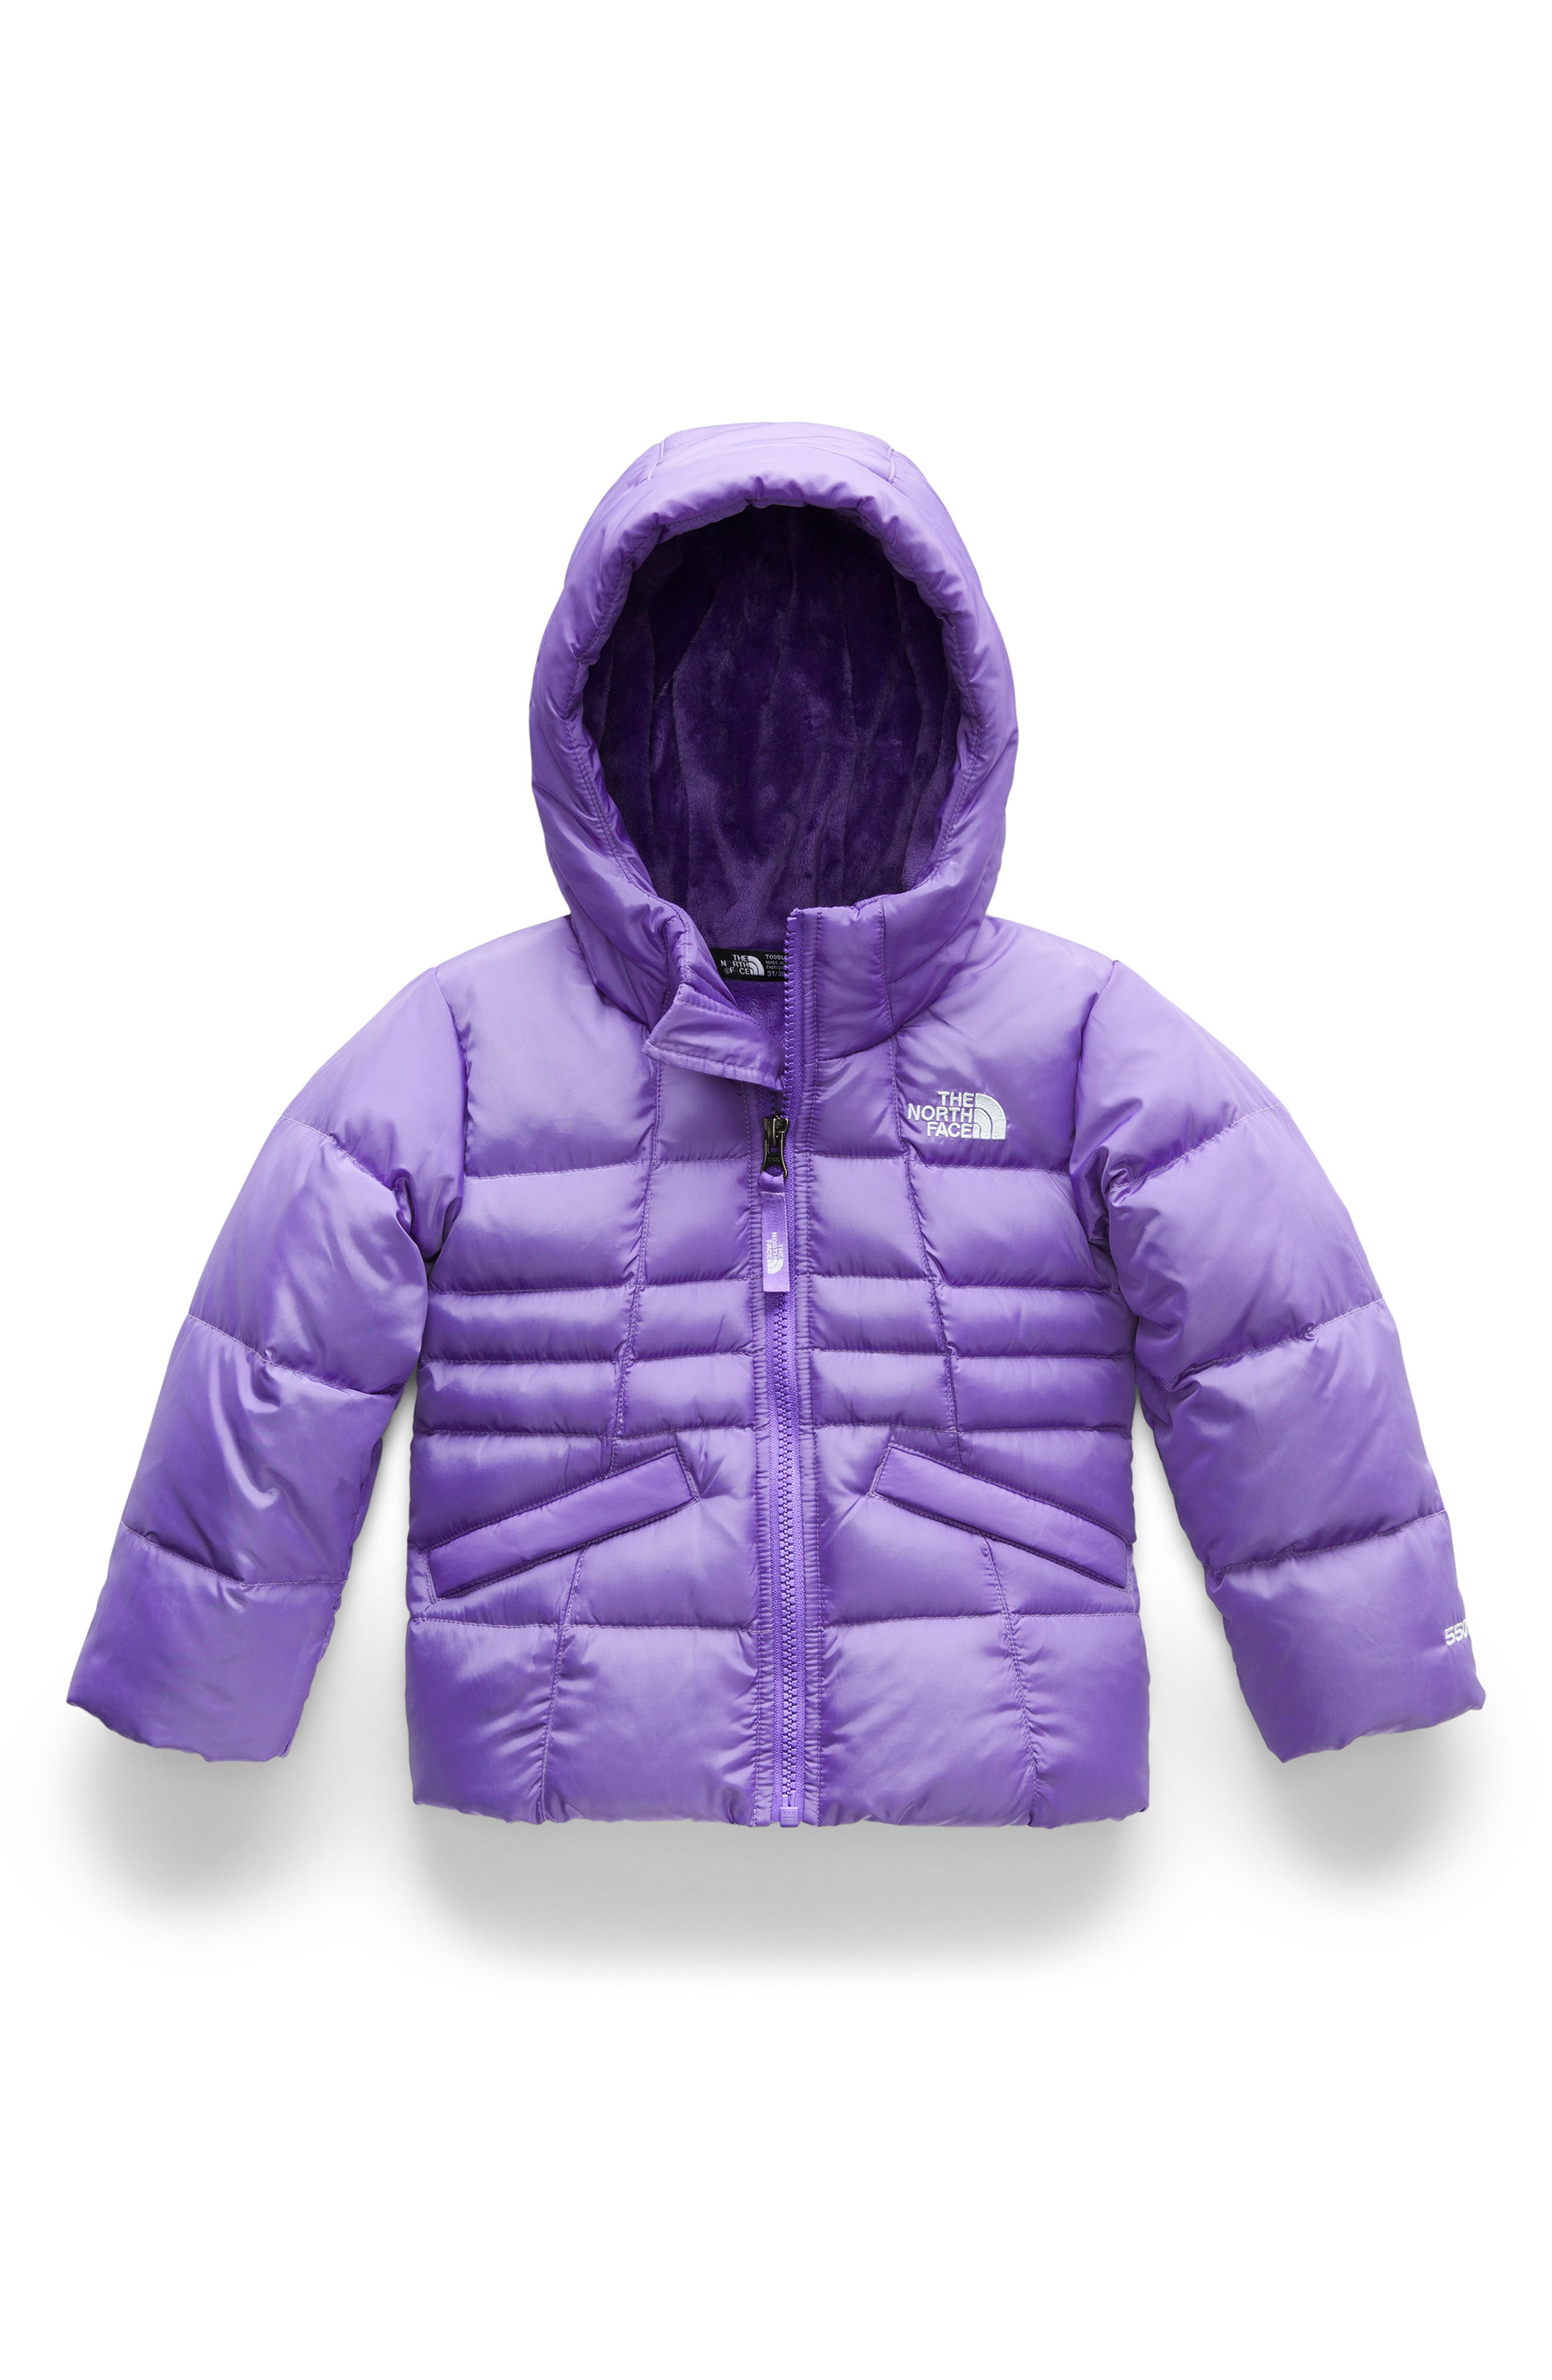 THE NORTH FACE Moondoggy 2.0 Water Repellent Down Jacket, Main, color, 501